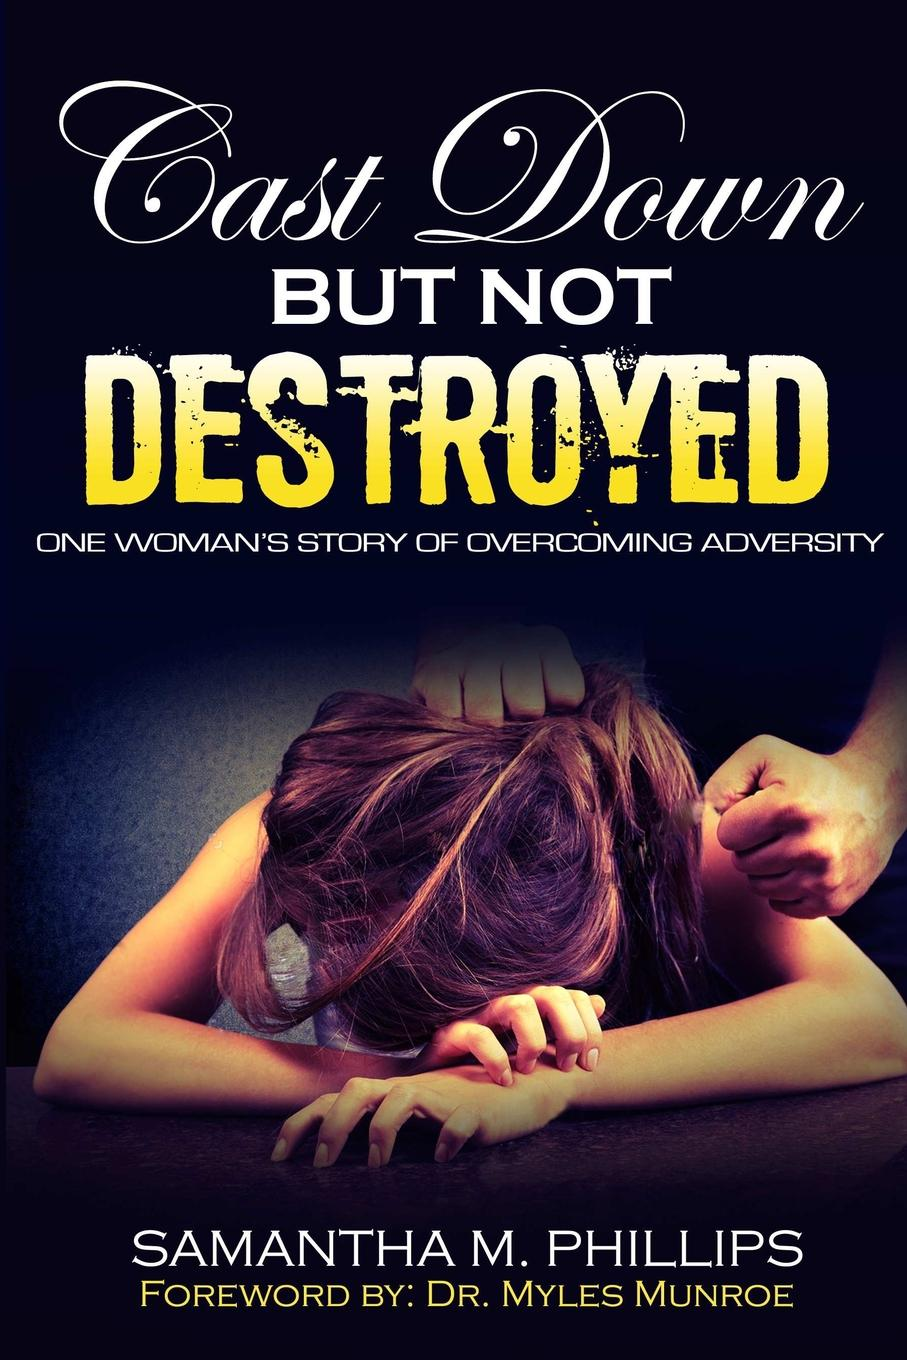 Samantha M Phillips Cast Down But Not Destroyed. One Woman.s Story of Overcoming Adversity hinder hinder all american nightmare